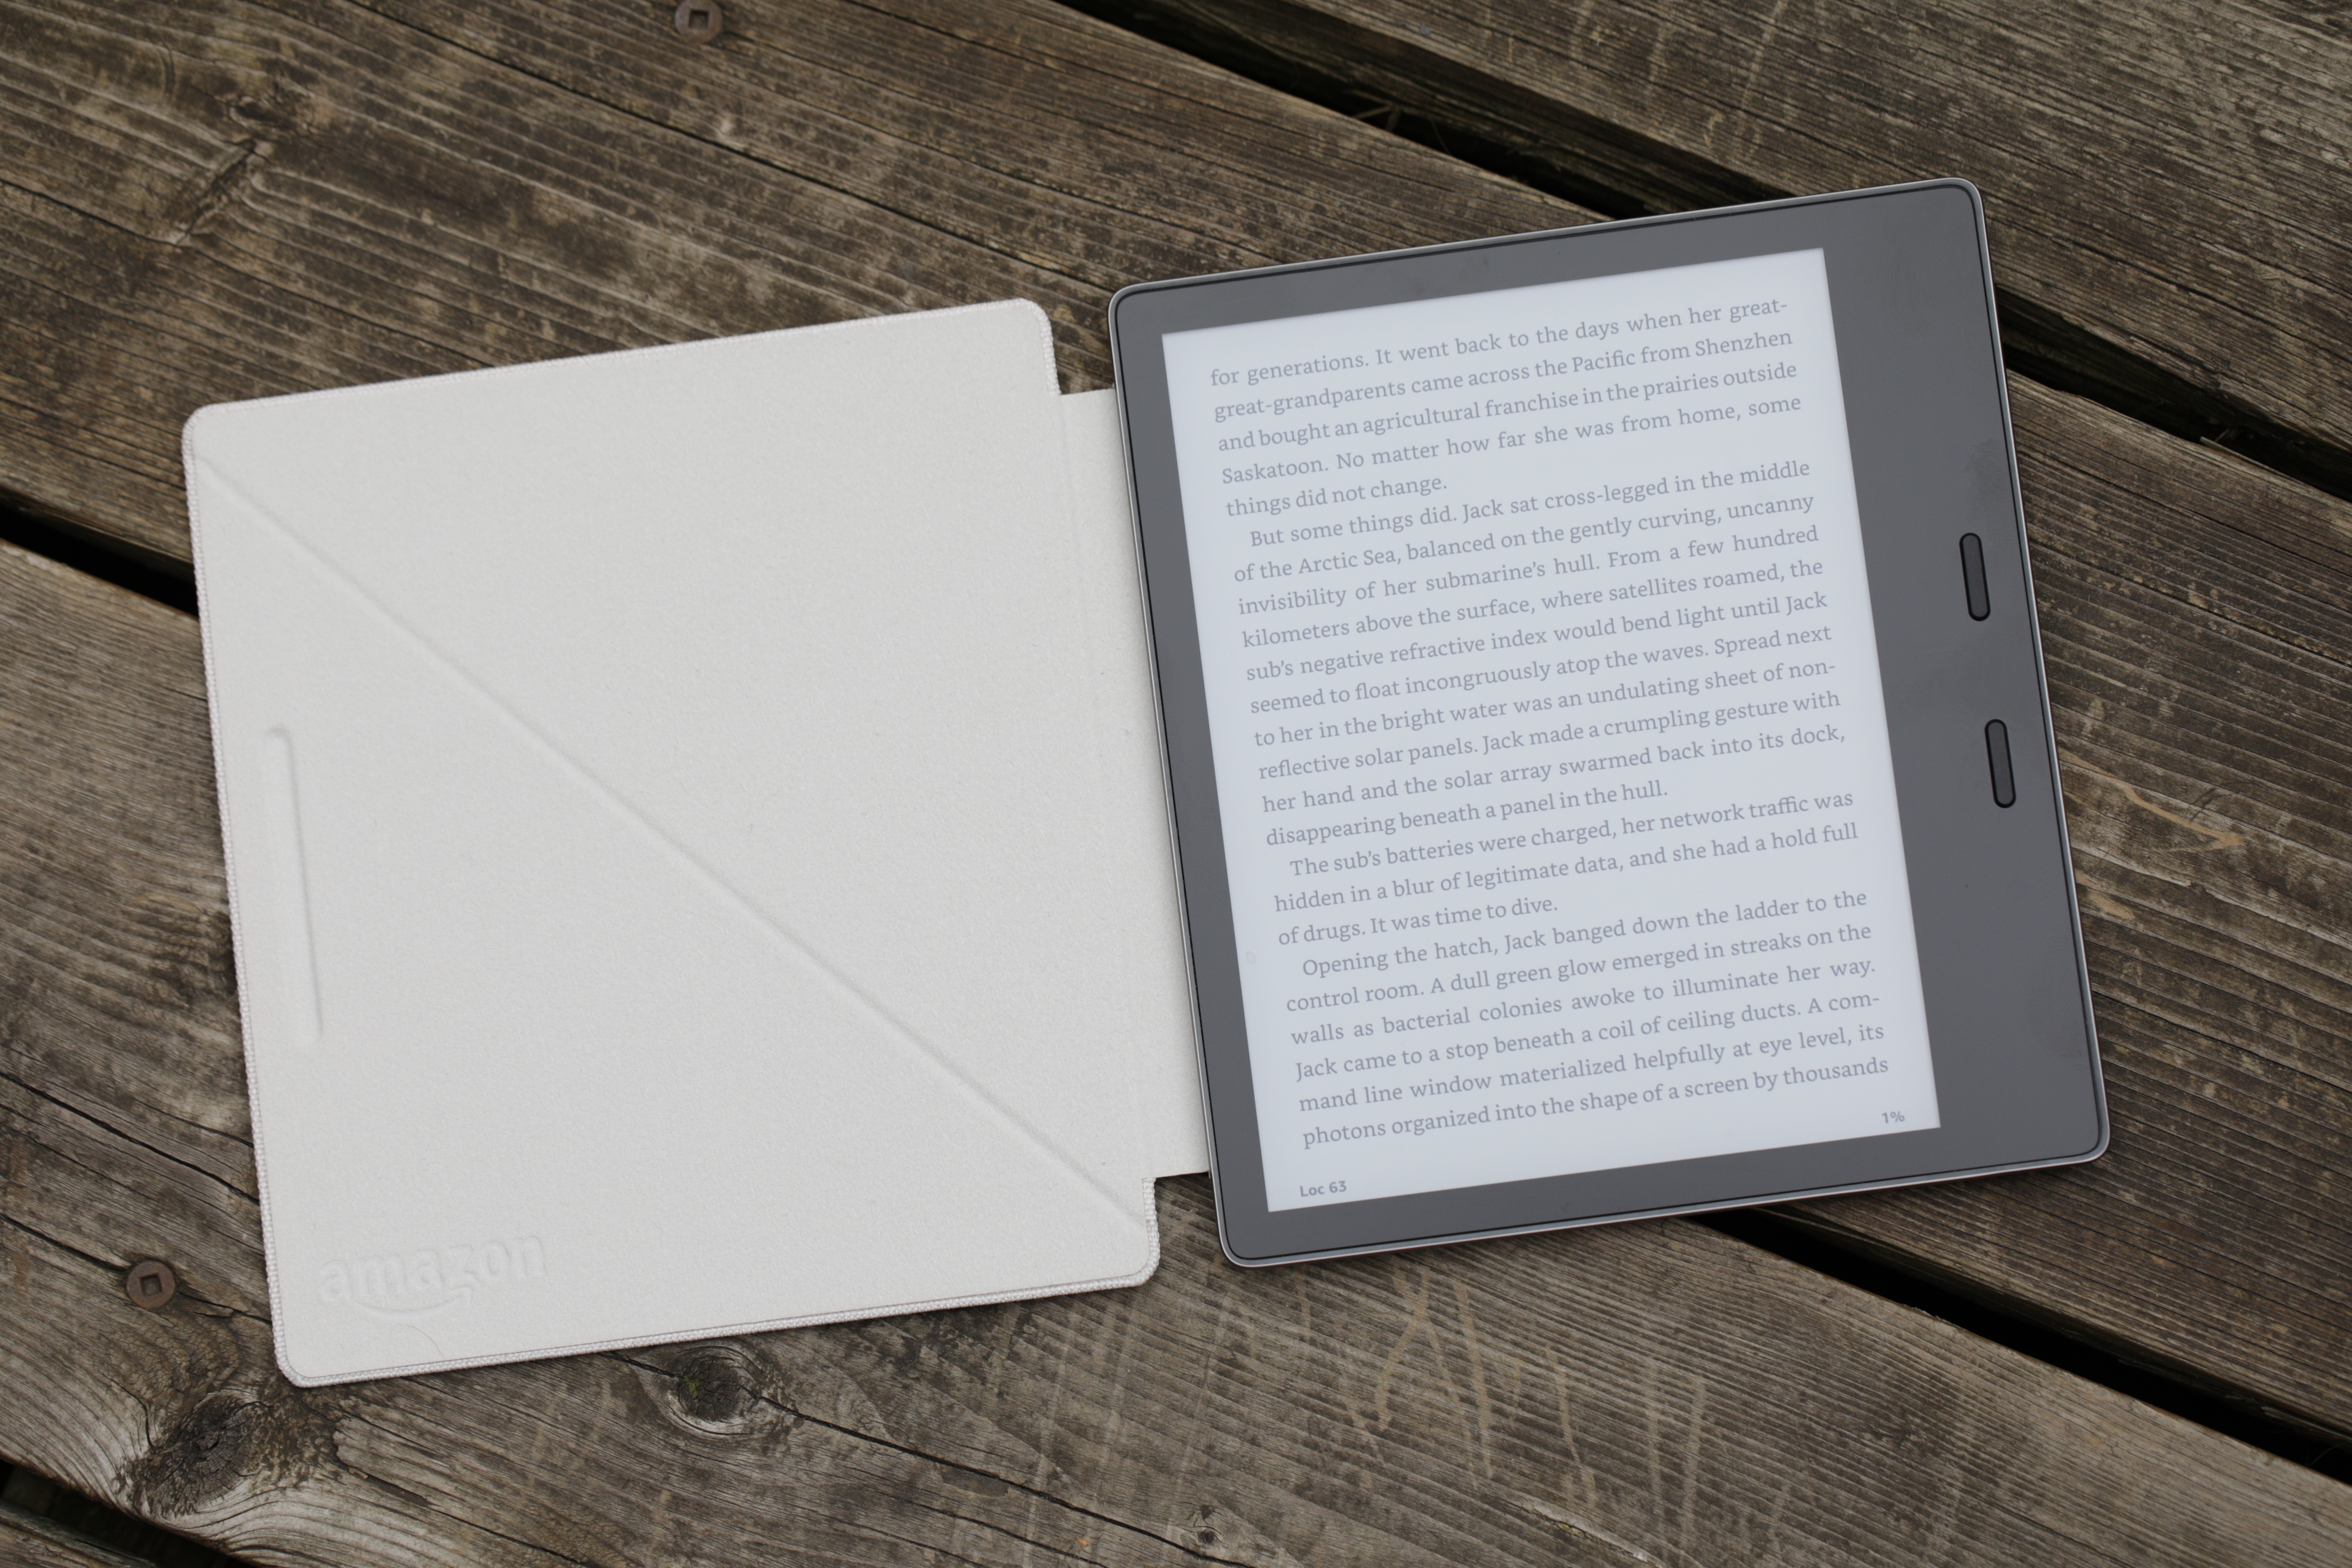 The new Kindle Oasis is my dream e-reader | TechCrunch